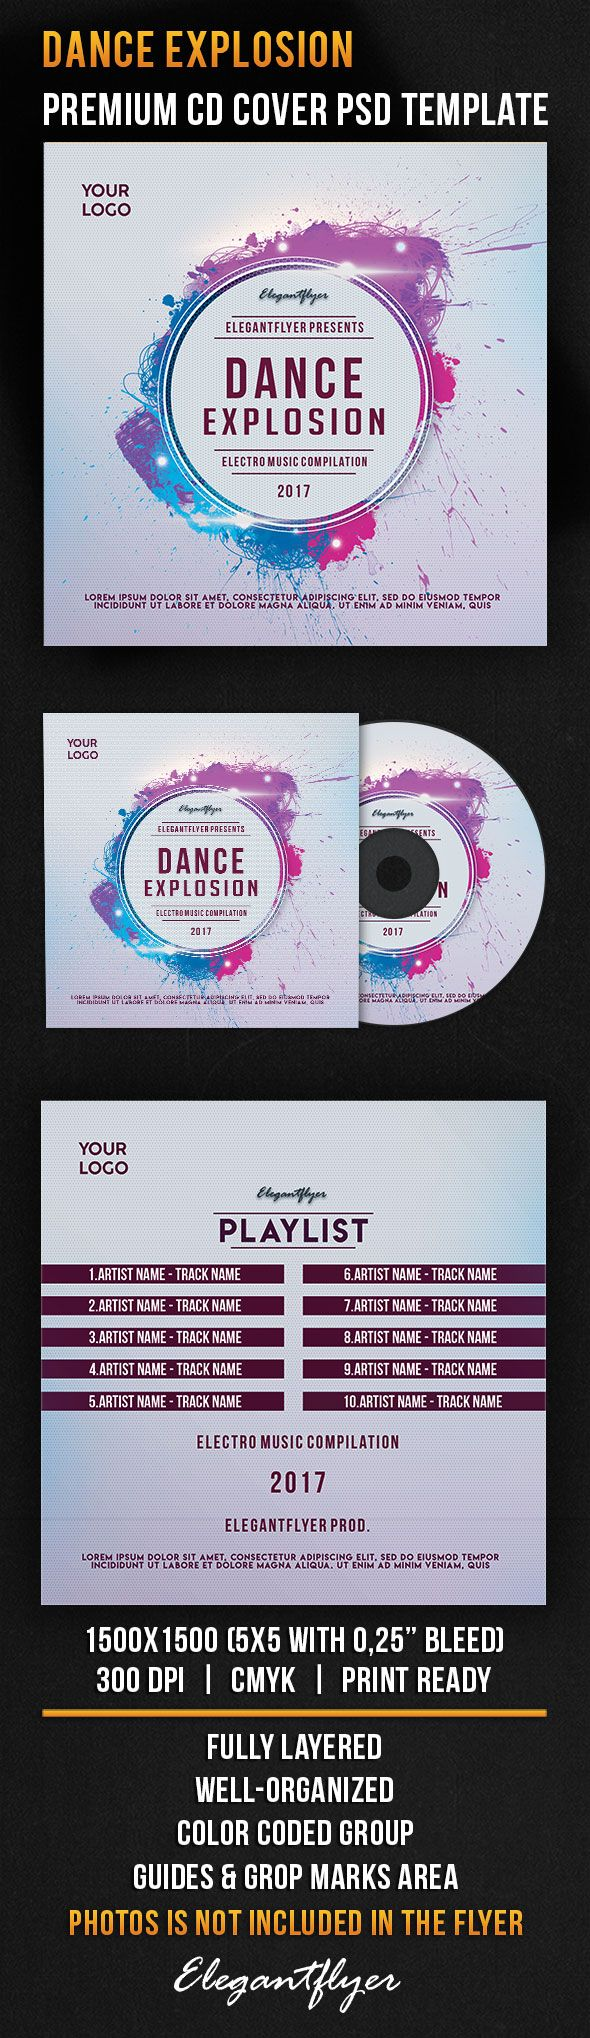 Dance Explosion – Premium CD Cover PSD Template